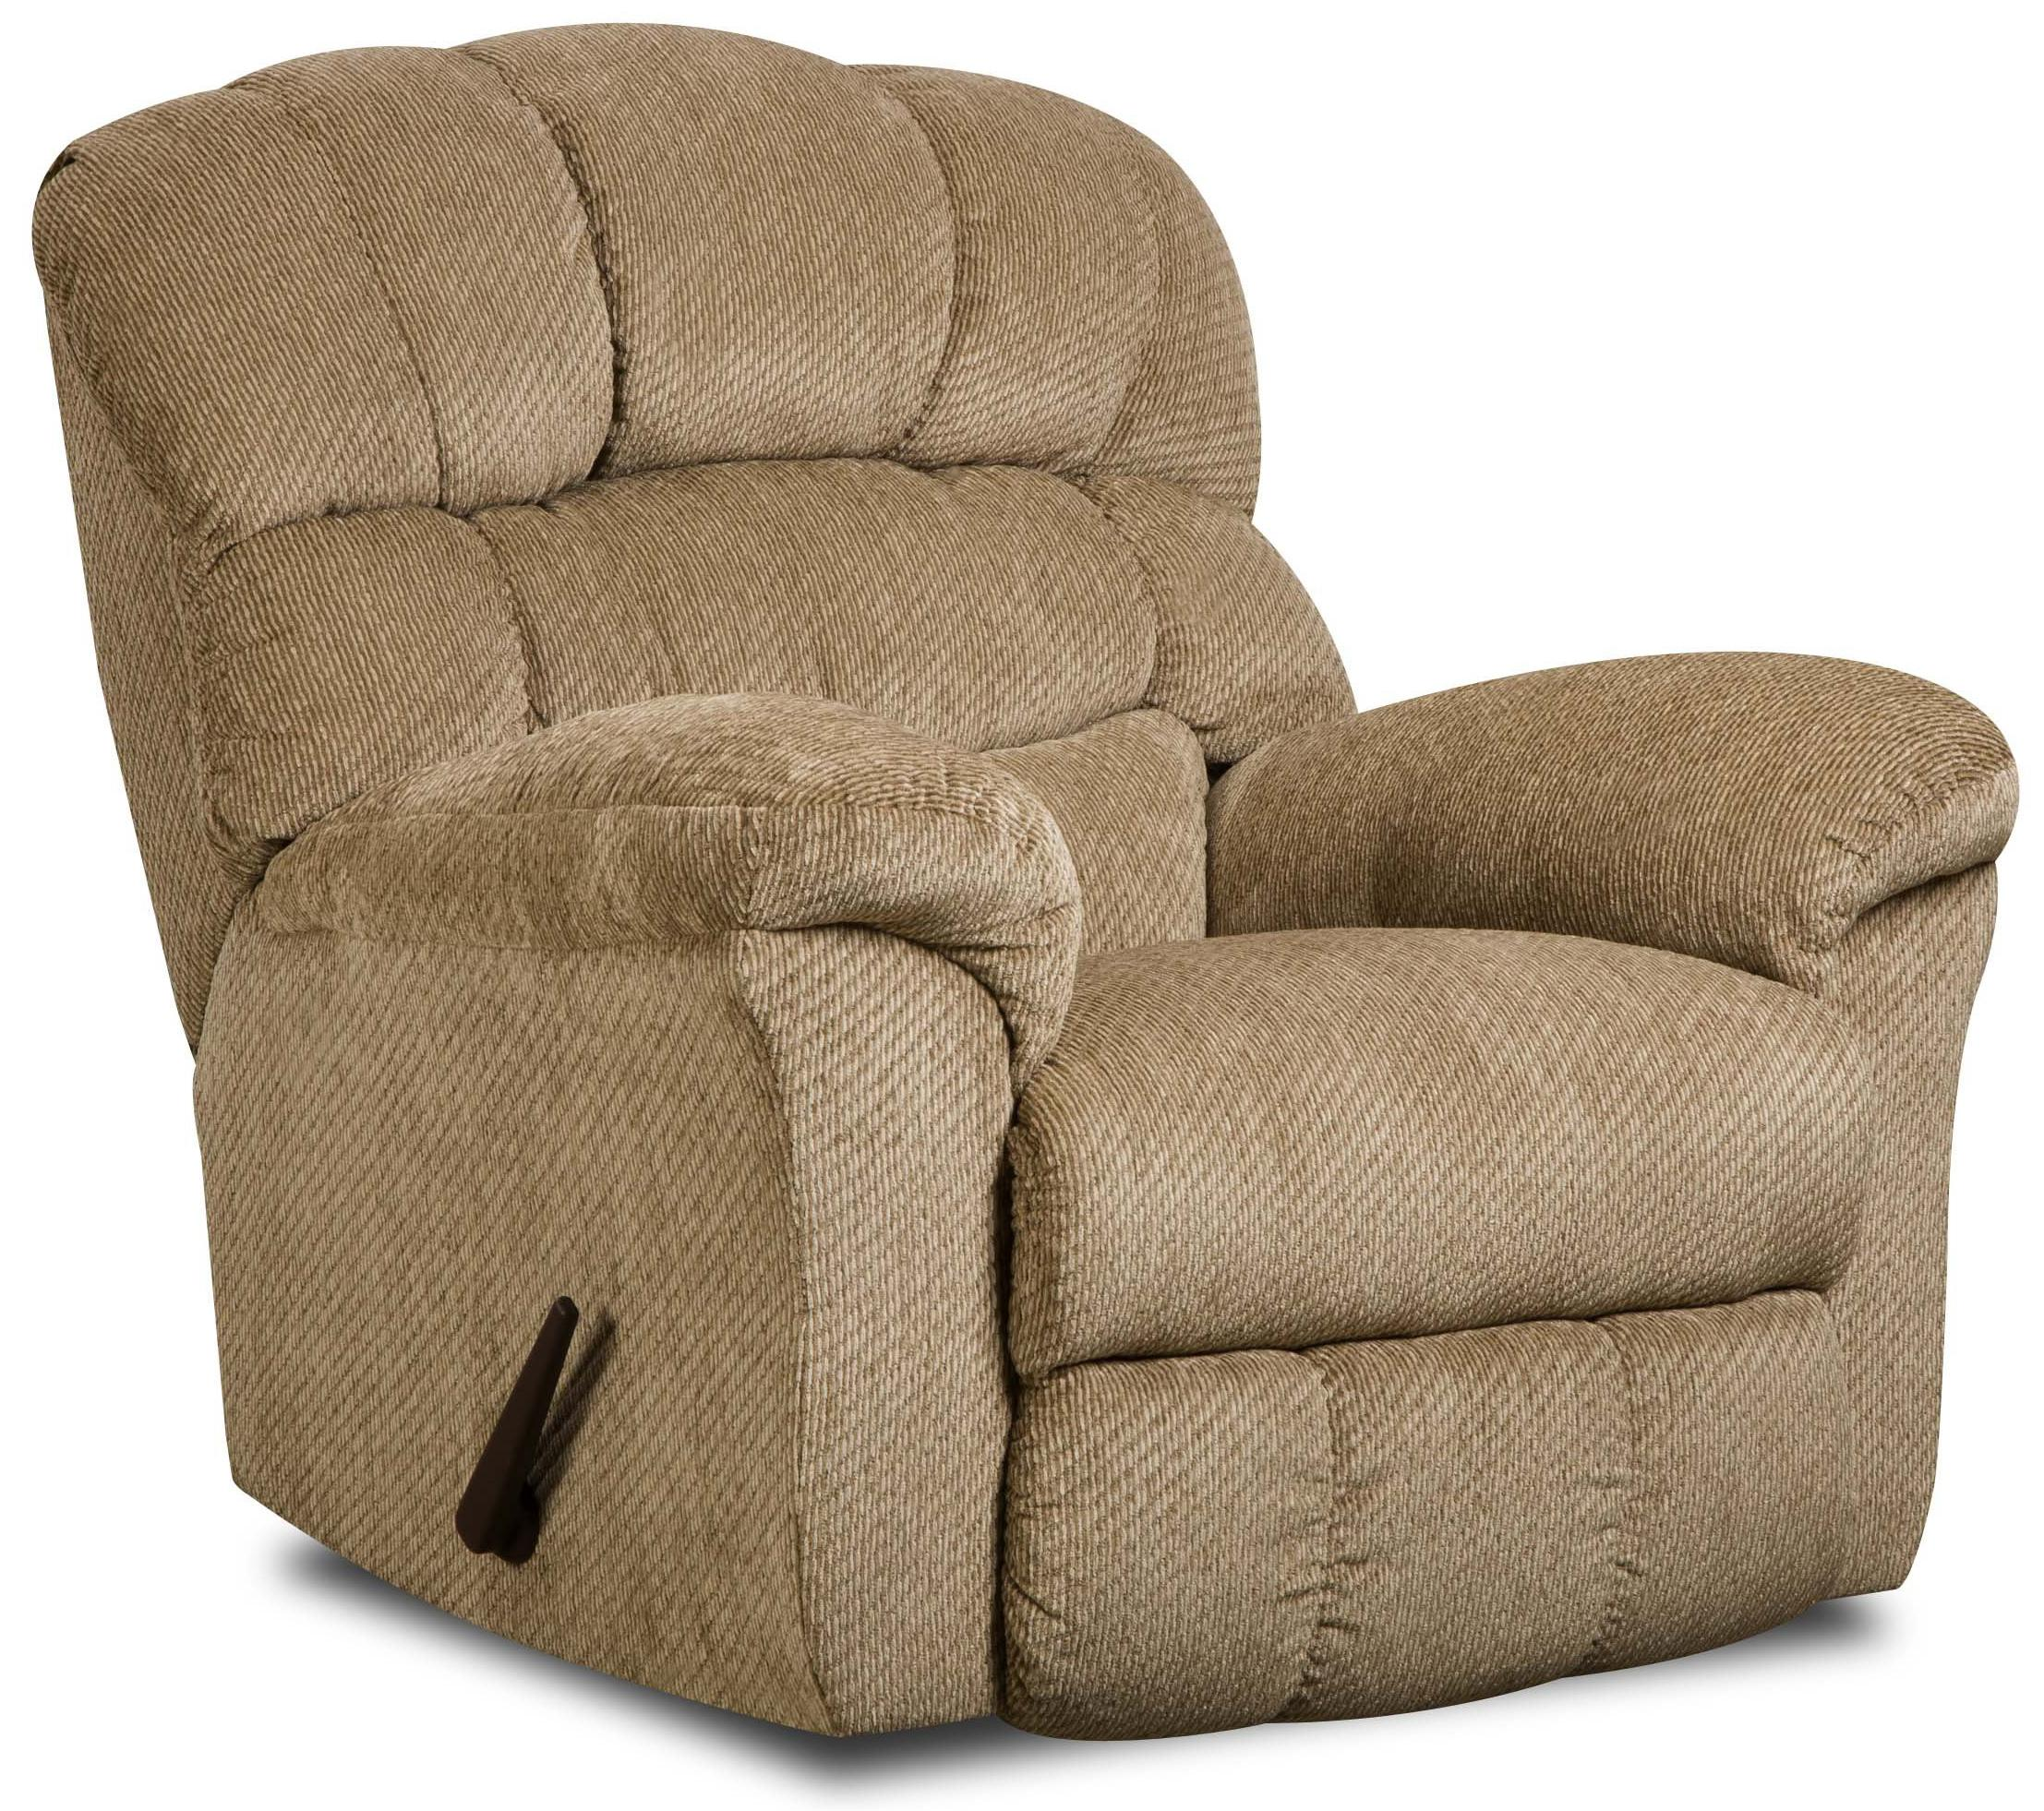 United Furniture Industries 558 Rocker Recliner - Item Number: 558 Recliner Sand